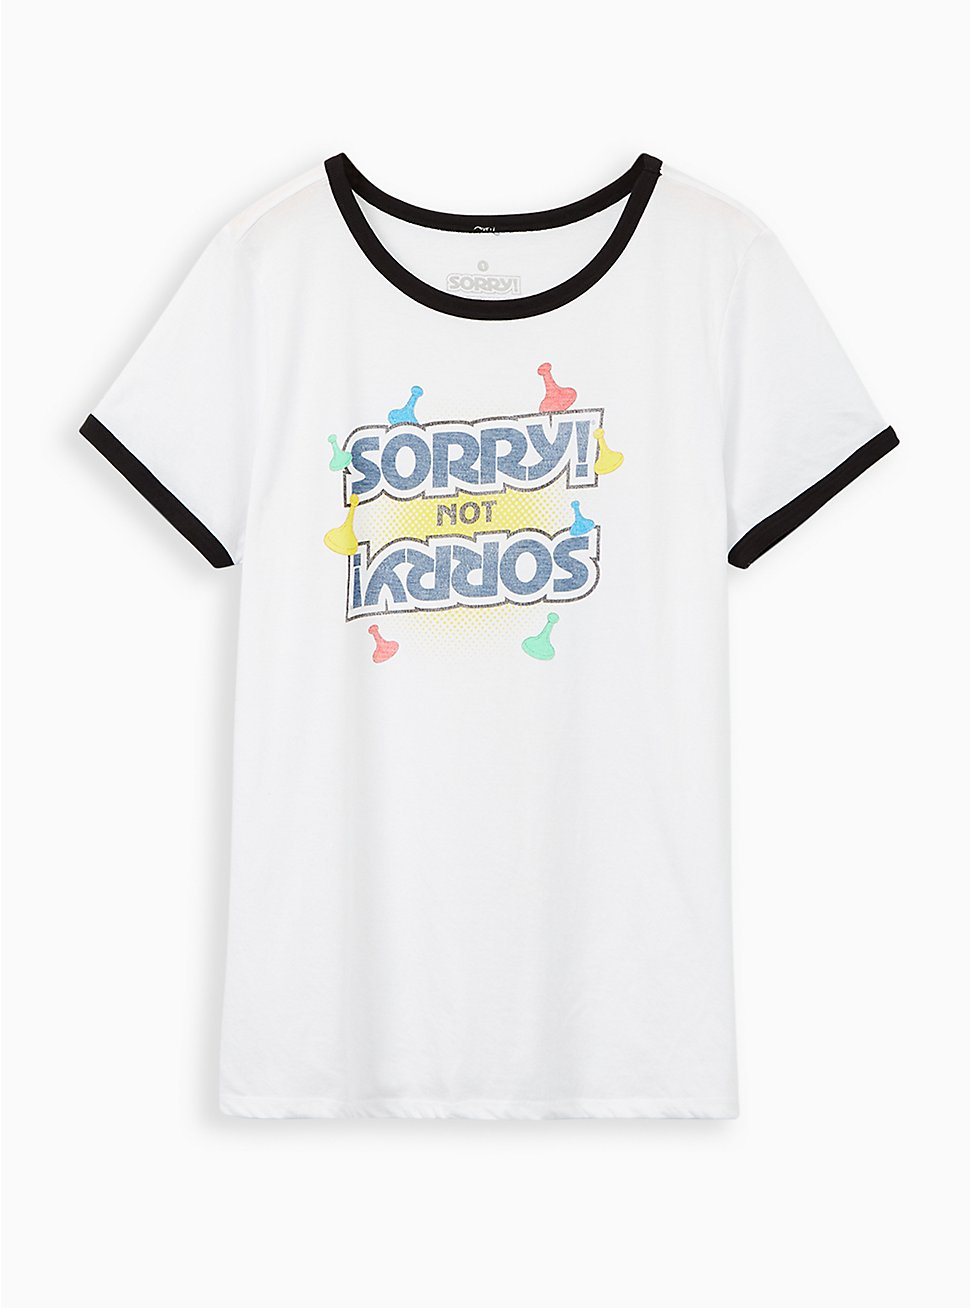 Slim Fit Ringer Tee - Sorry White , BRIGHT WHITE, hi-res